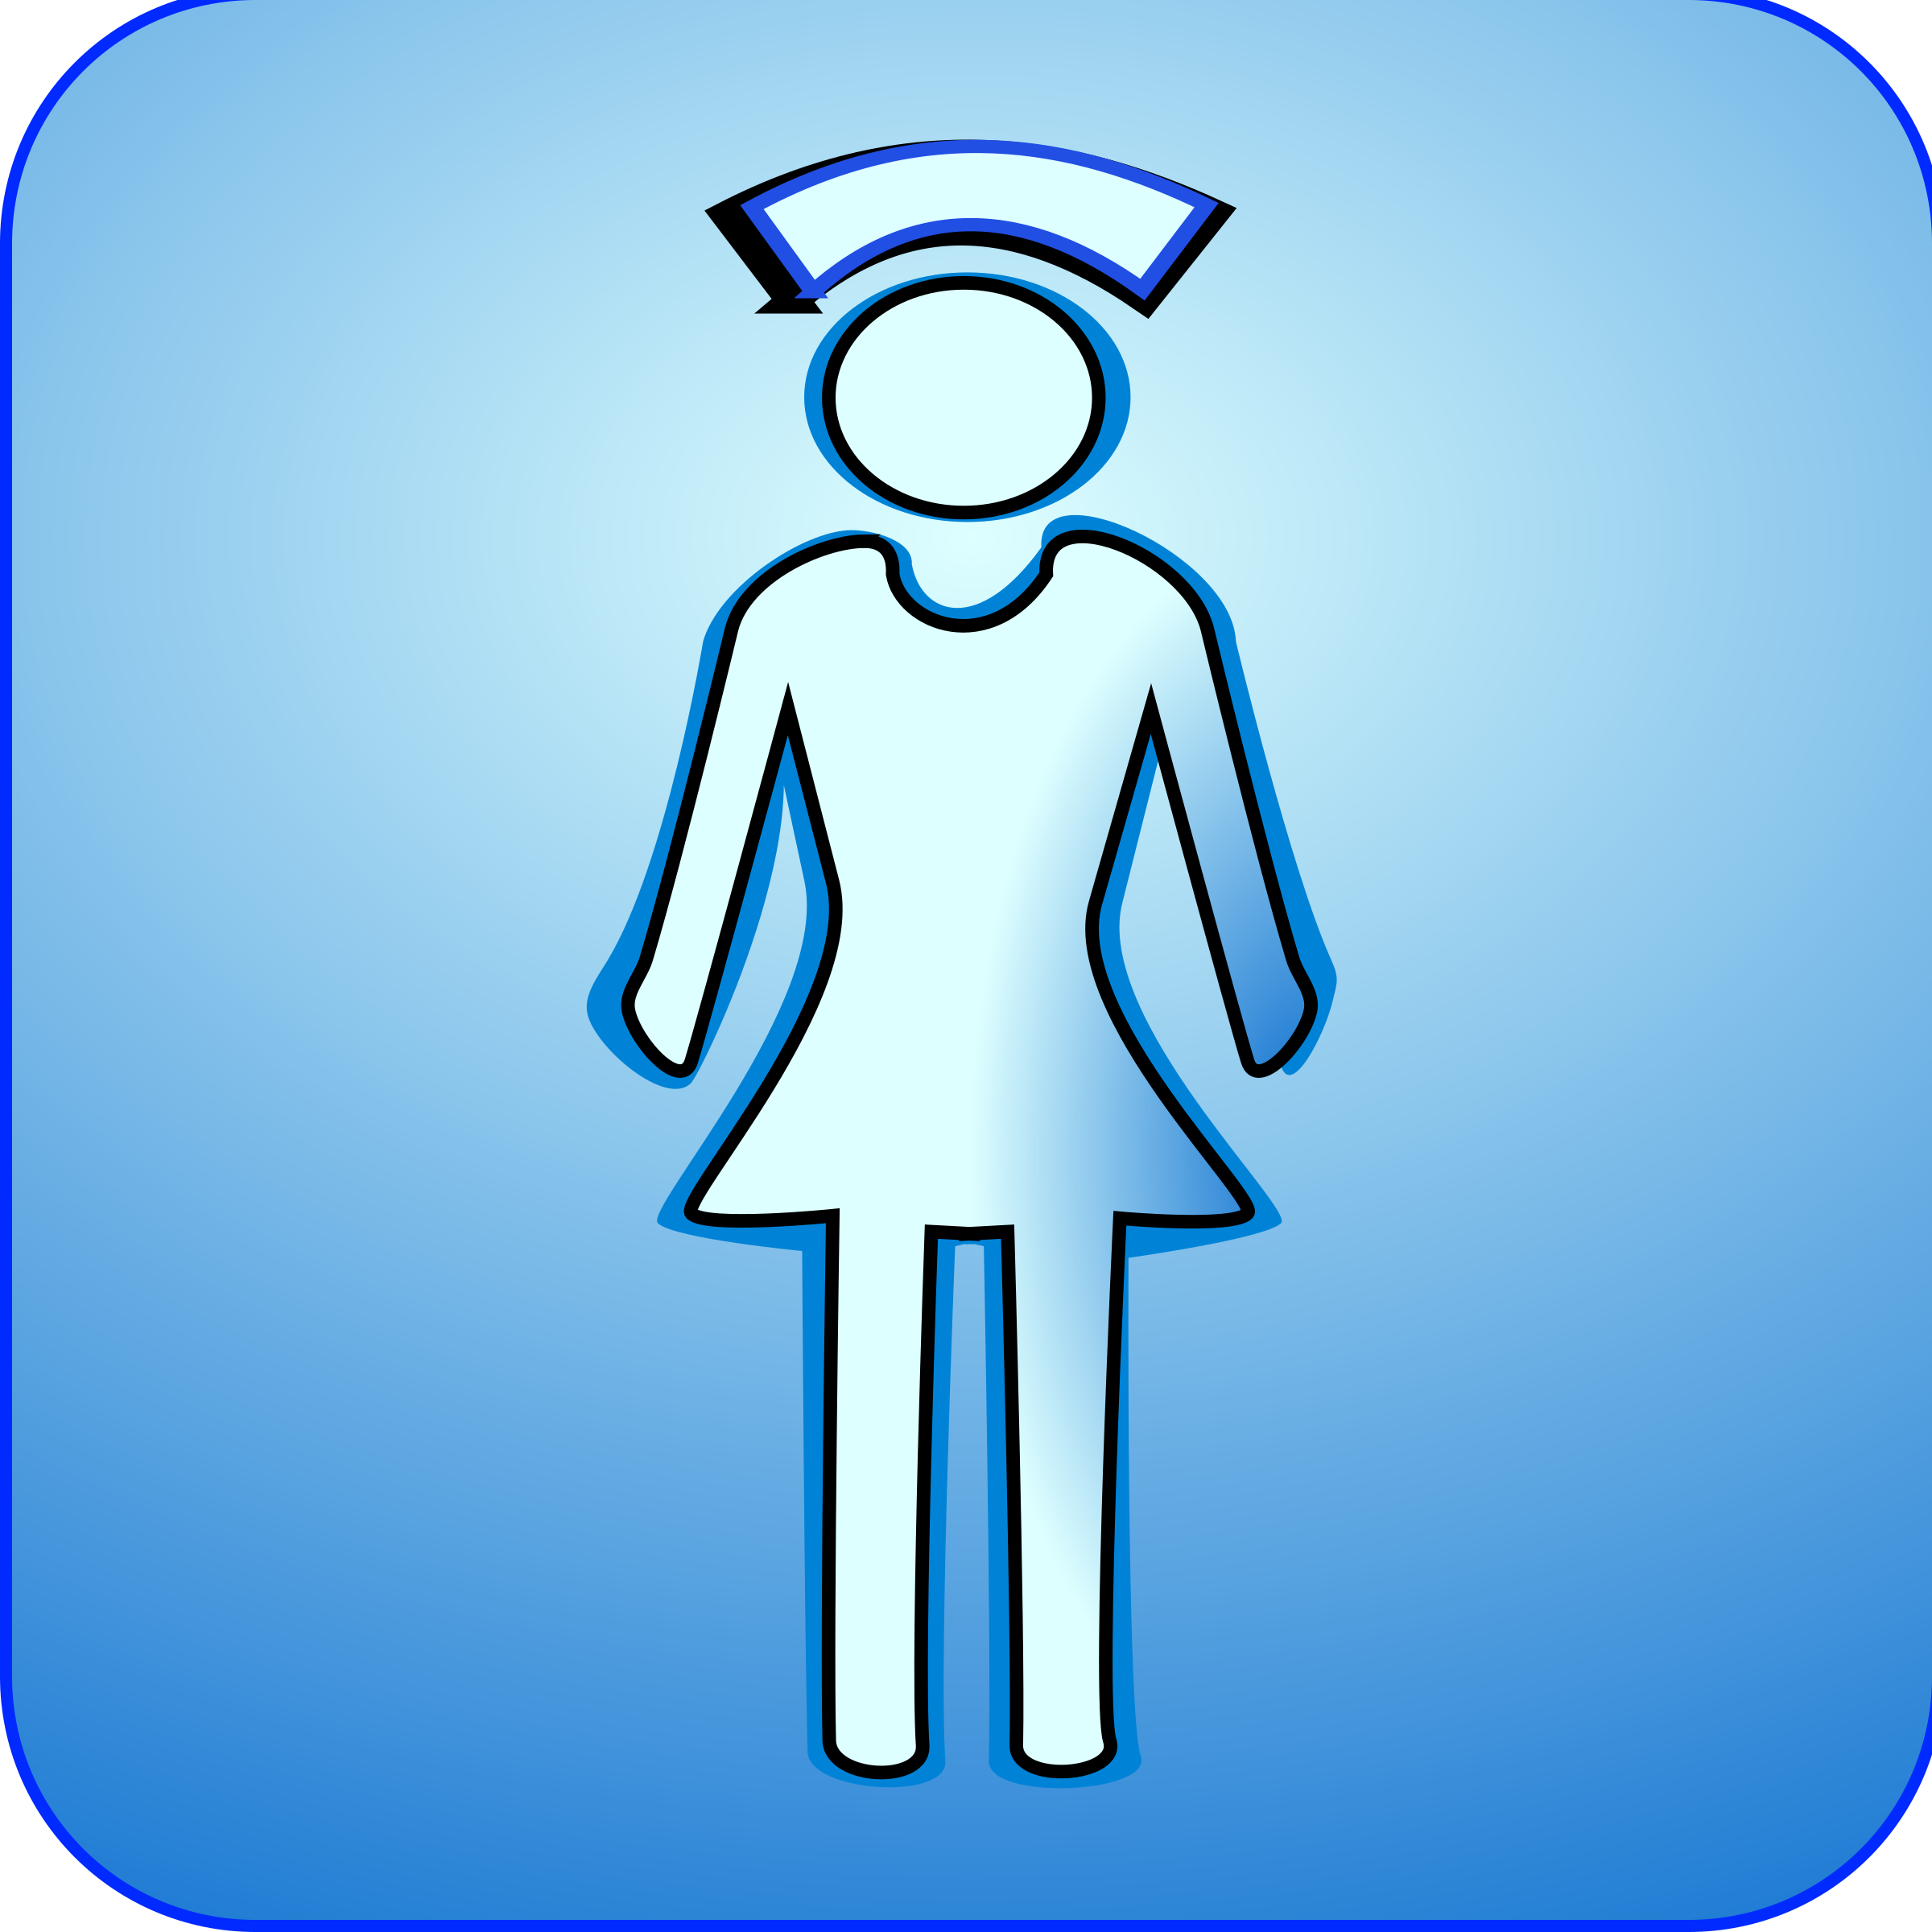 nurse_icon_glossy_128x128 by netalloy